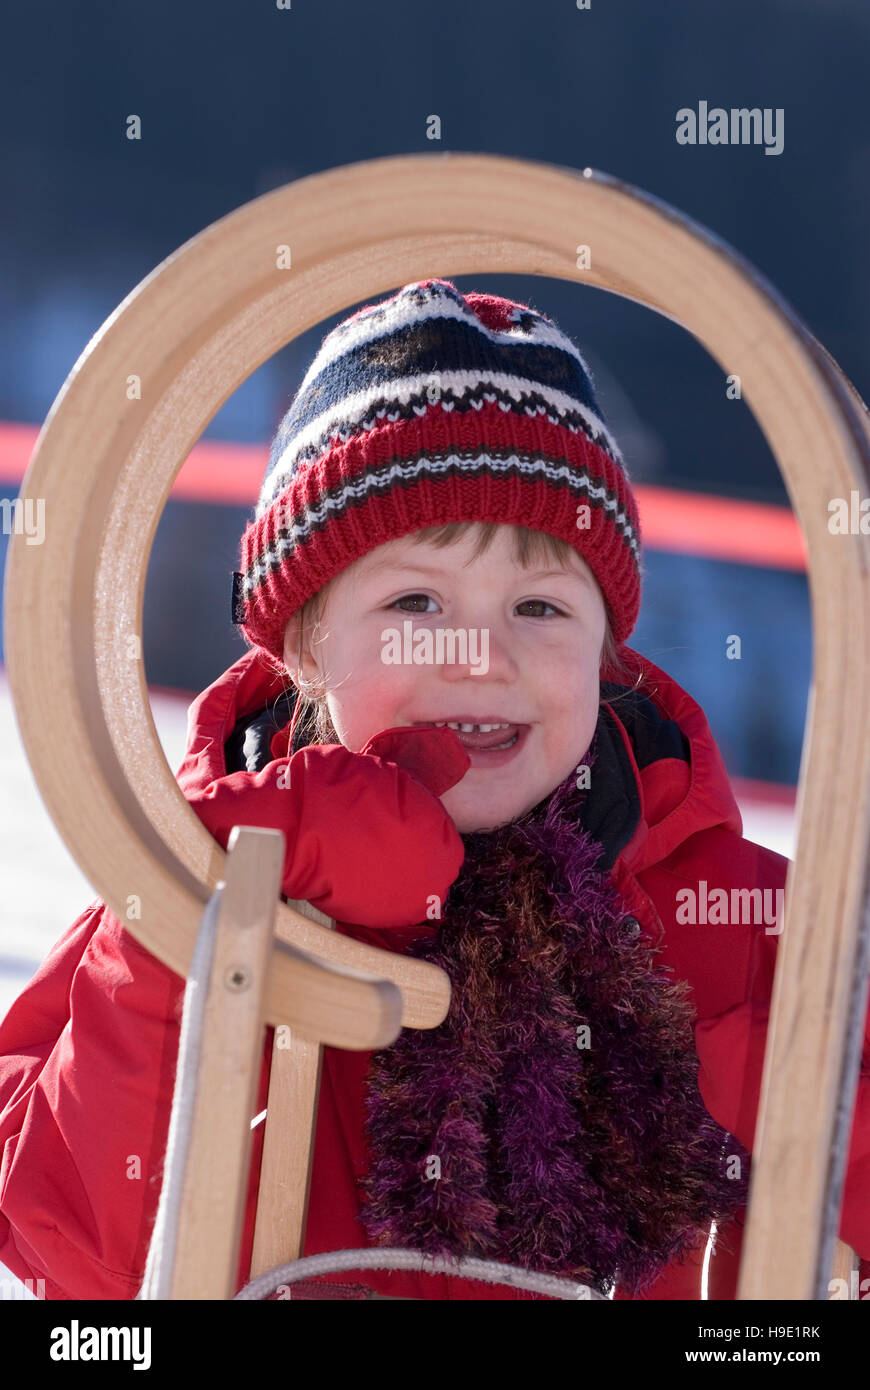 Child standing behind a sledge - Stock Image